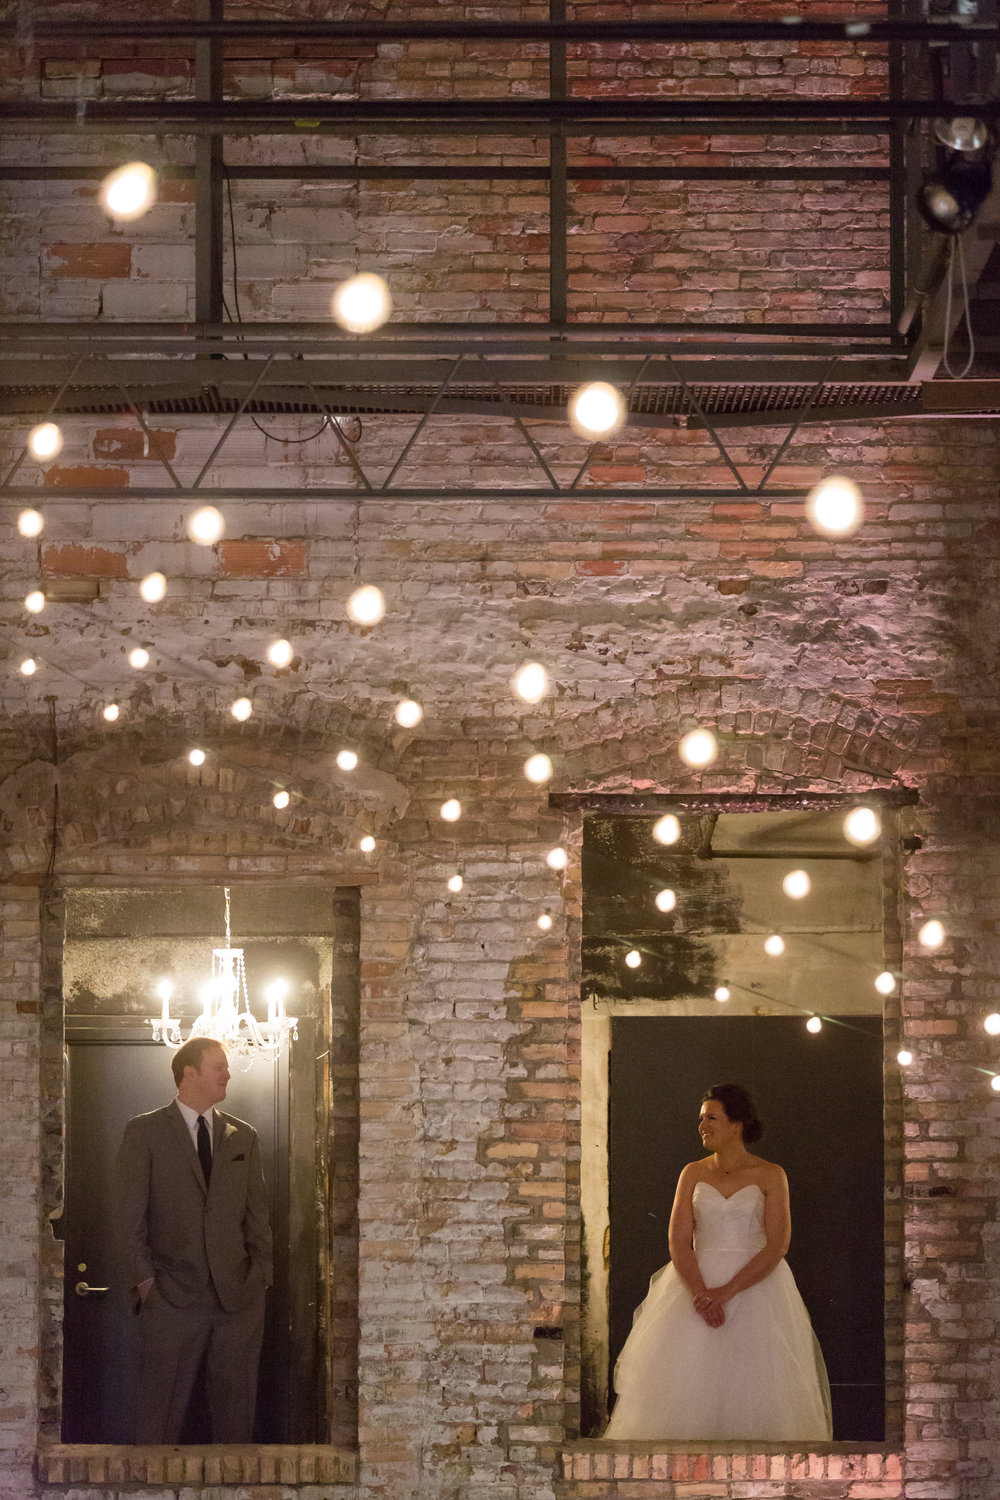 Vendors:Venue:Aria | Photography:Studio 220| Beauty:Primped| Catering:Chowgirls| Floral:Grace Klein Design| Rentals/Decor:Linen Effects| Cake:Cocoa & Fig| Ceremony Music:Lake String Quartet | Officiant:Positively Charmed| Reception Entertainment:Adagio